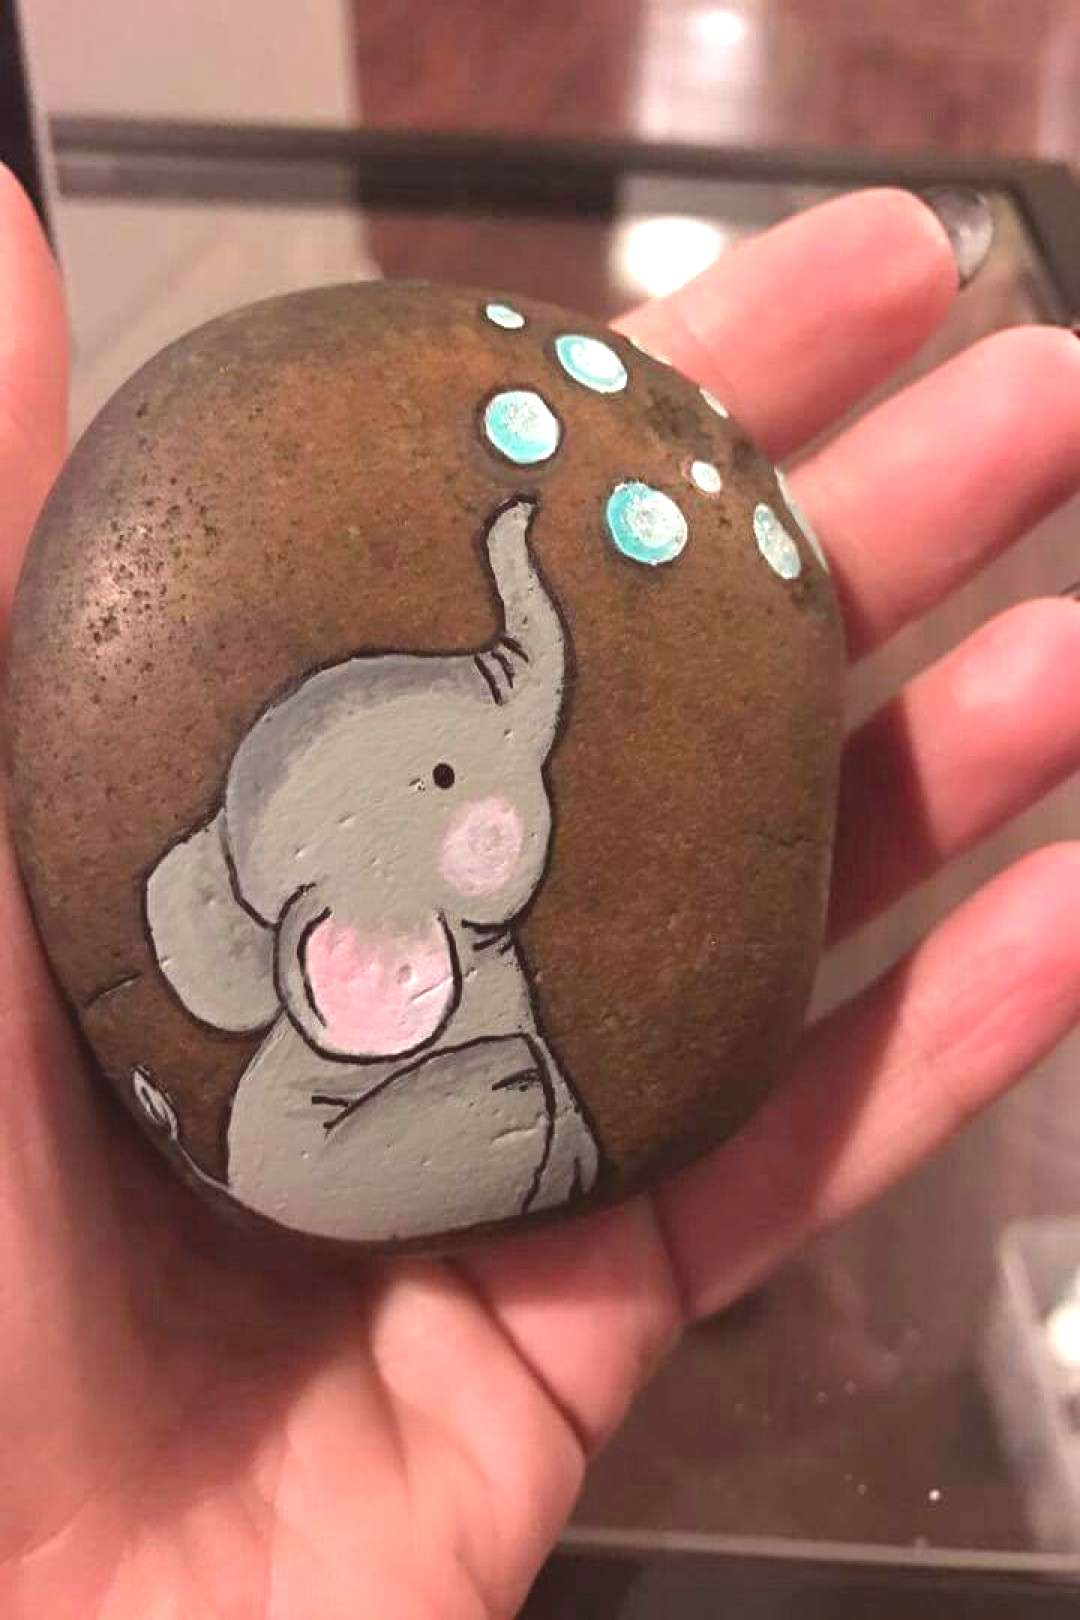 Easy Paint Rock For Try at Home (Stone Art amp Rock Painting Ideas, Easy Paint Rock For Try at Home